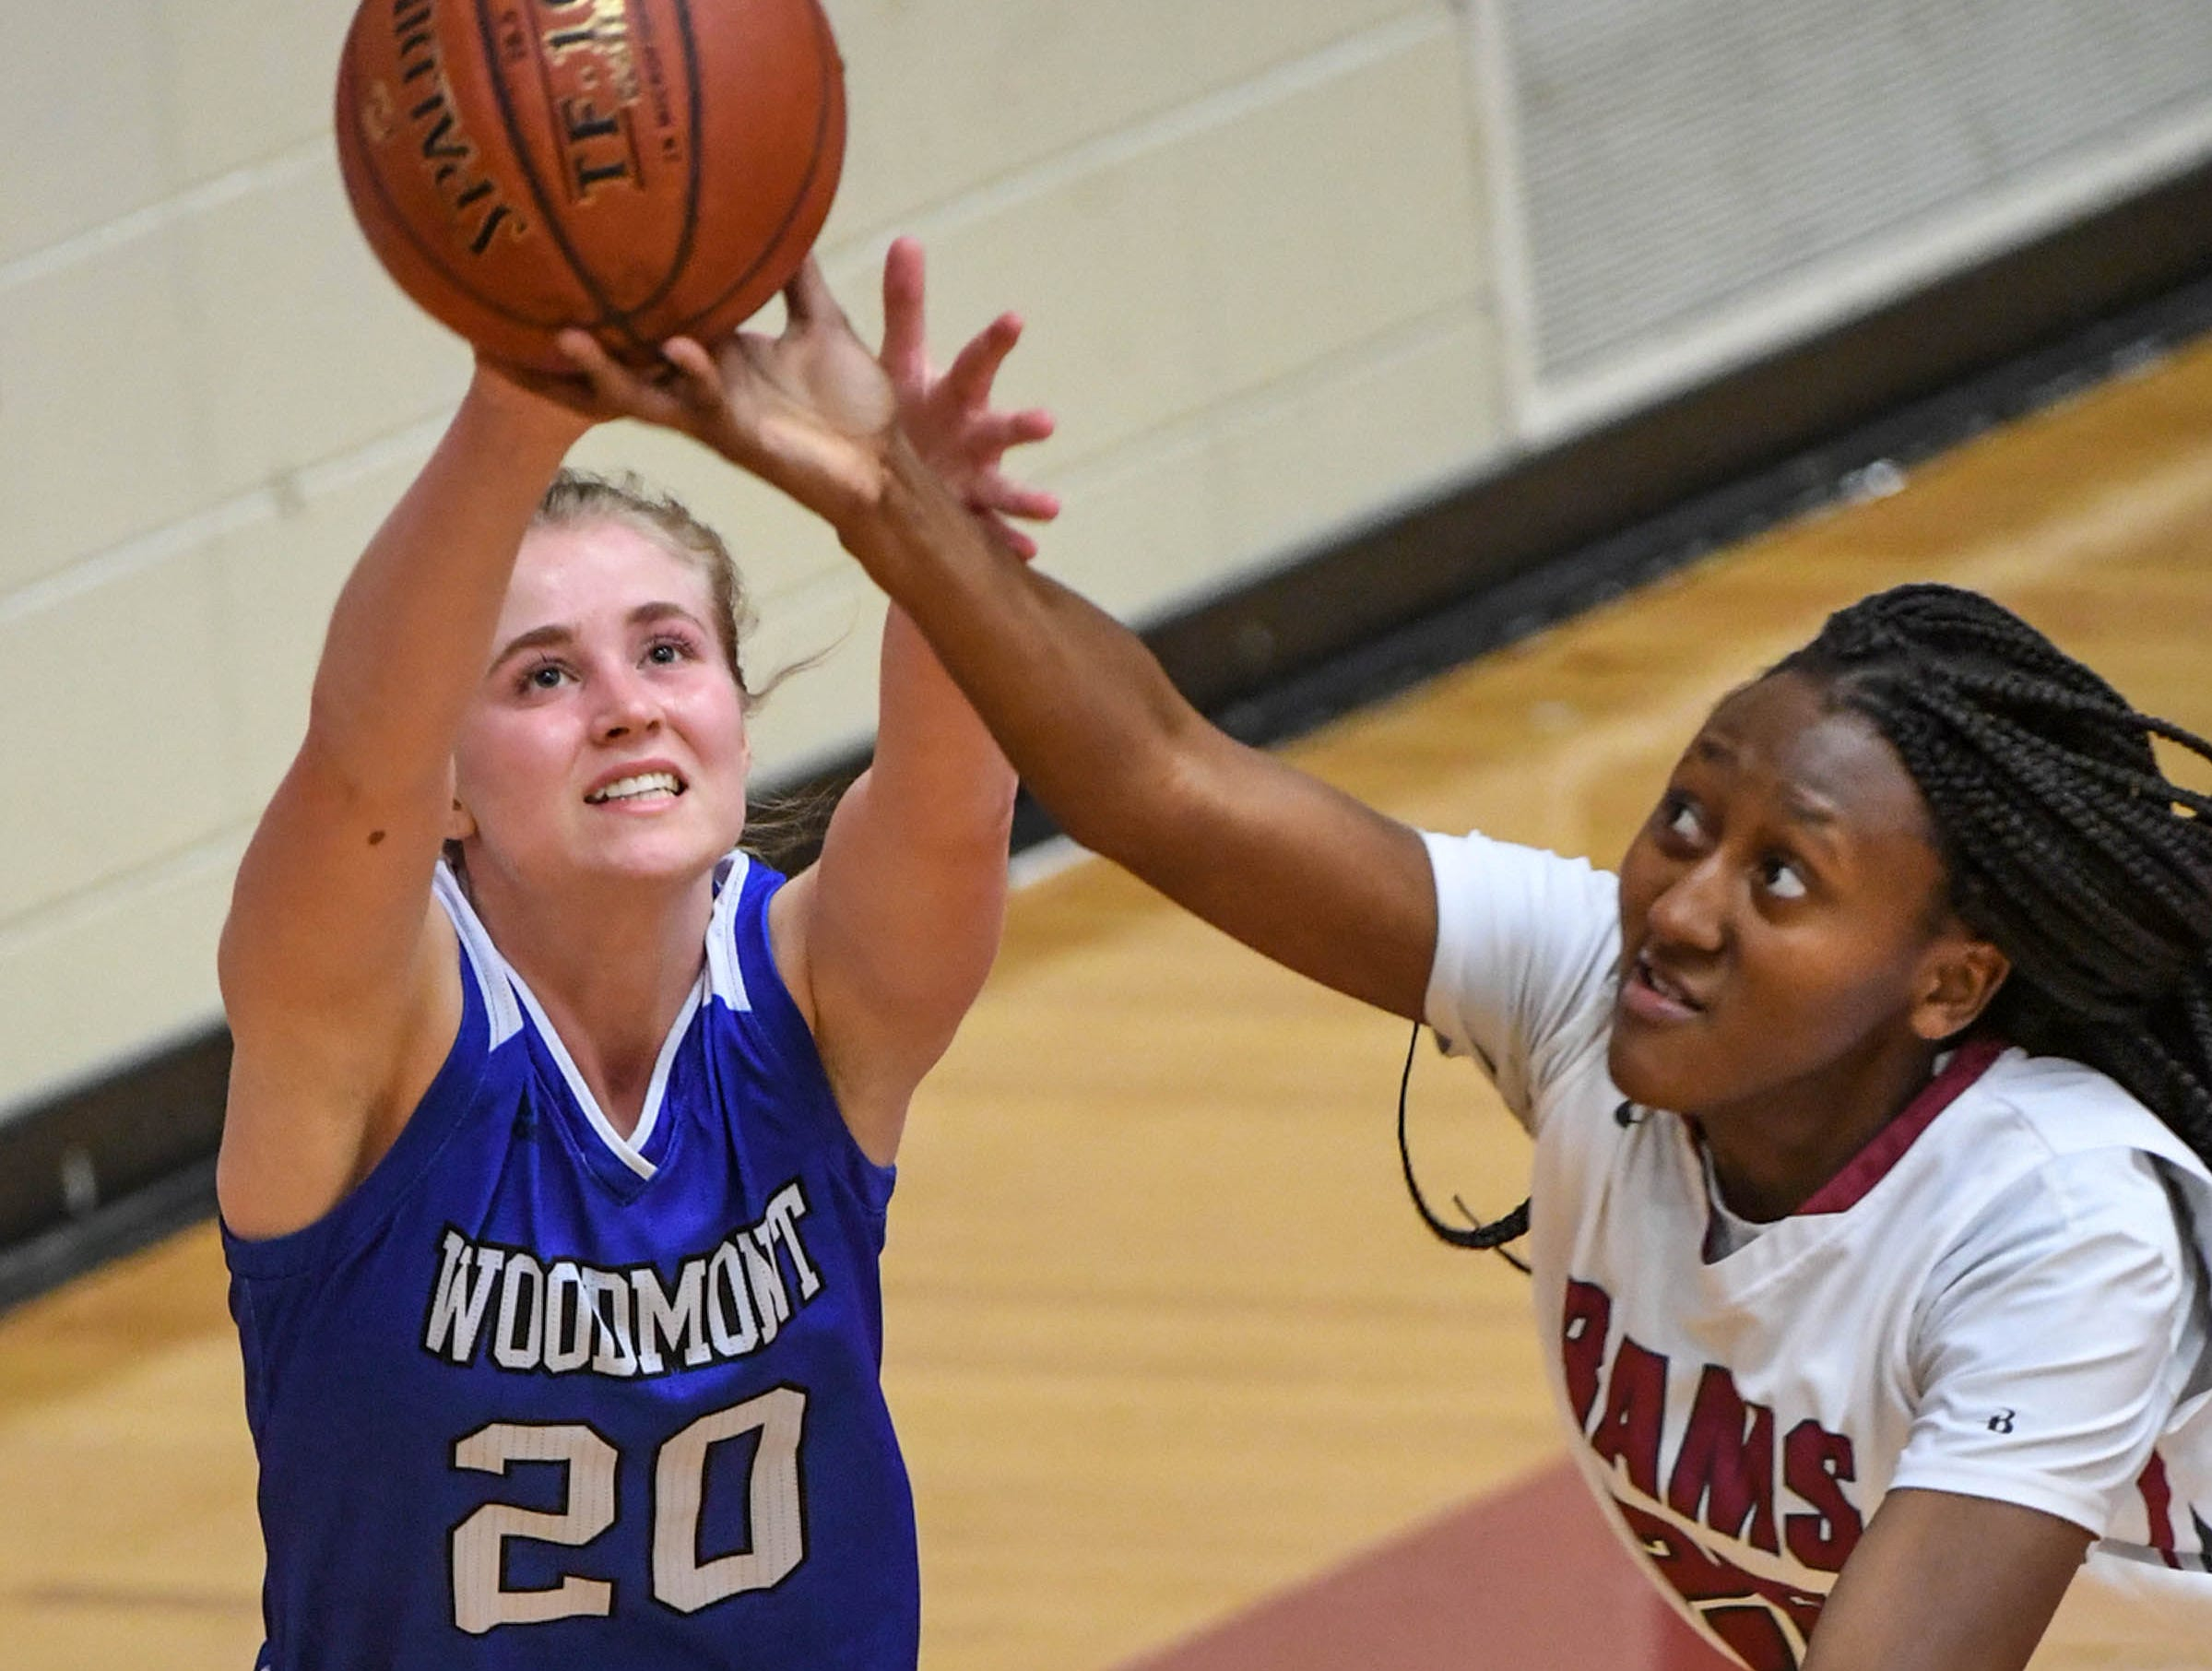 Woodmont senior Xan Rowland(20), left, and Westside junior Keyshuna Fair(25) reach for a loose ball during the third quarter at Westside High School in Anderson on Tuesday.